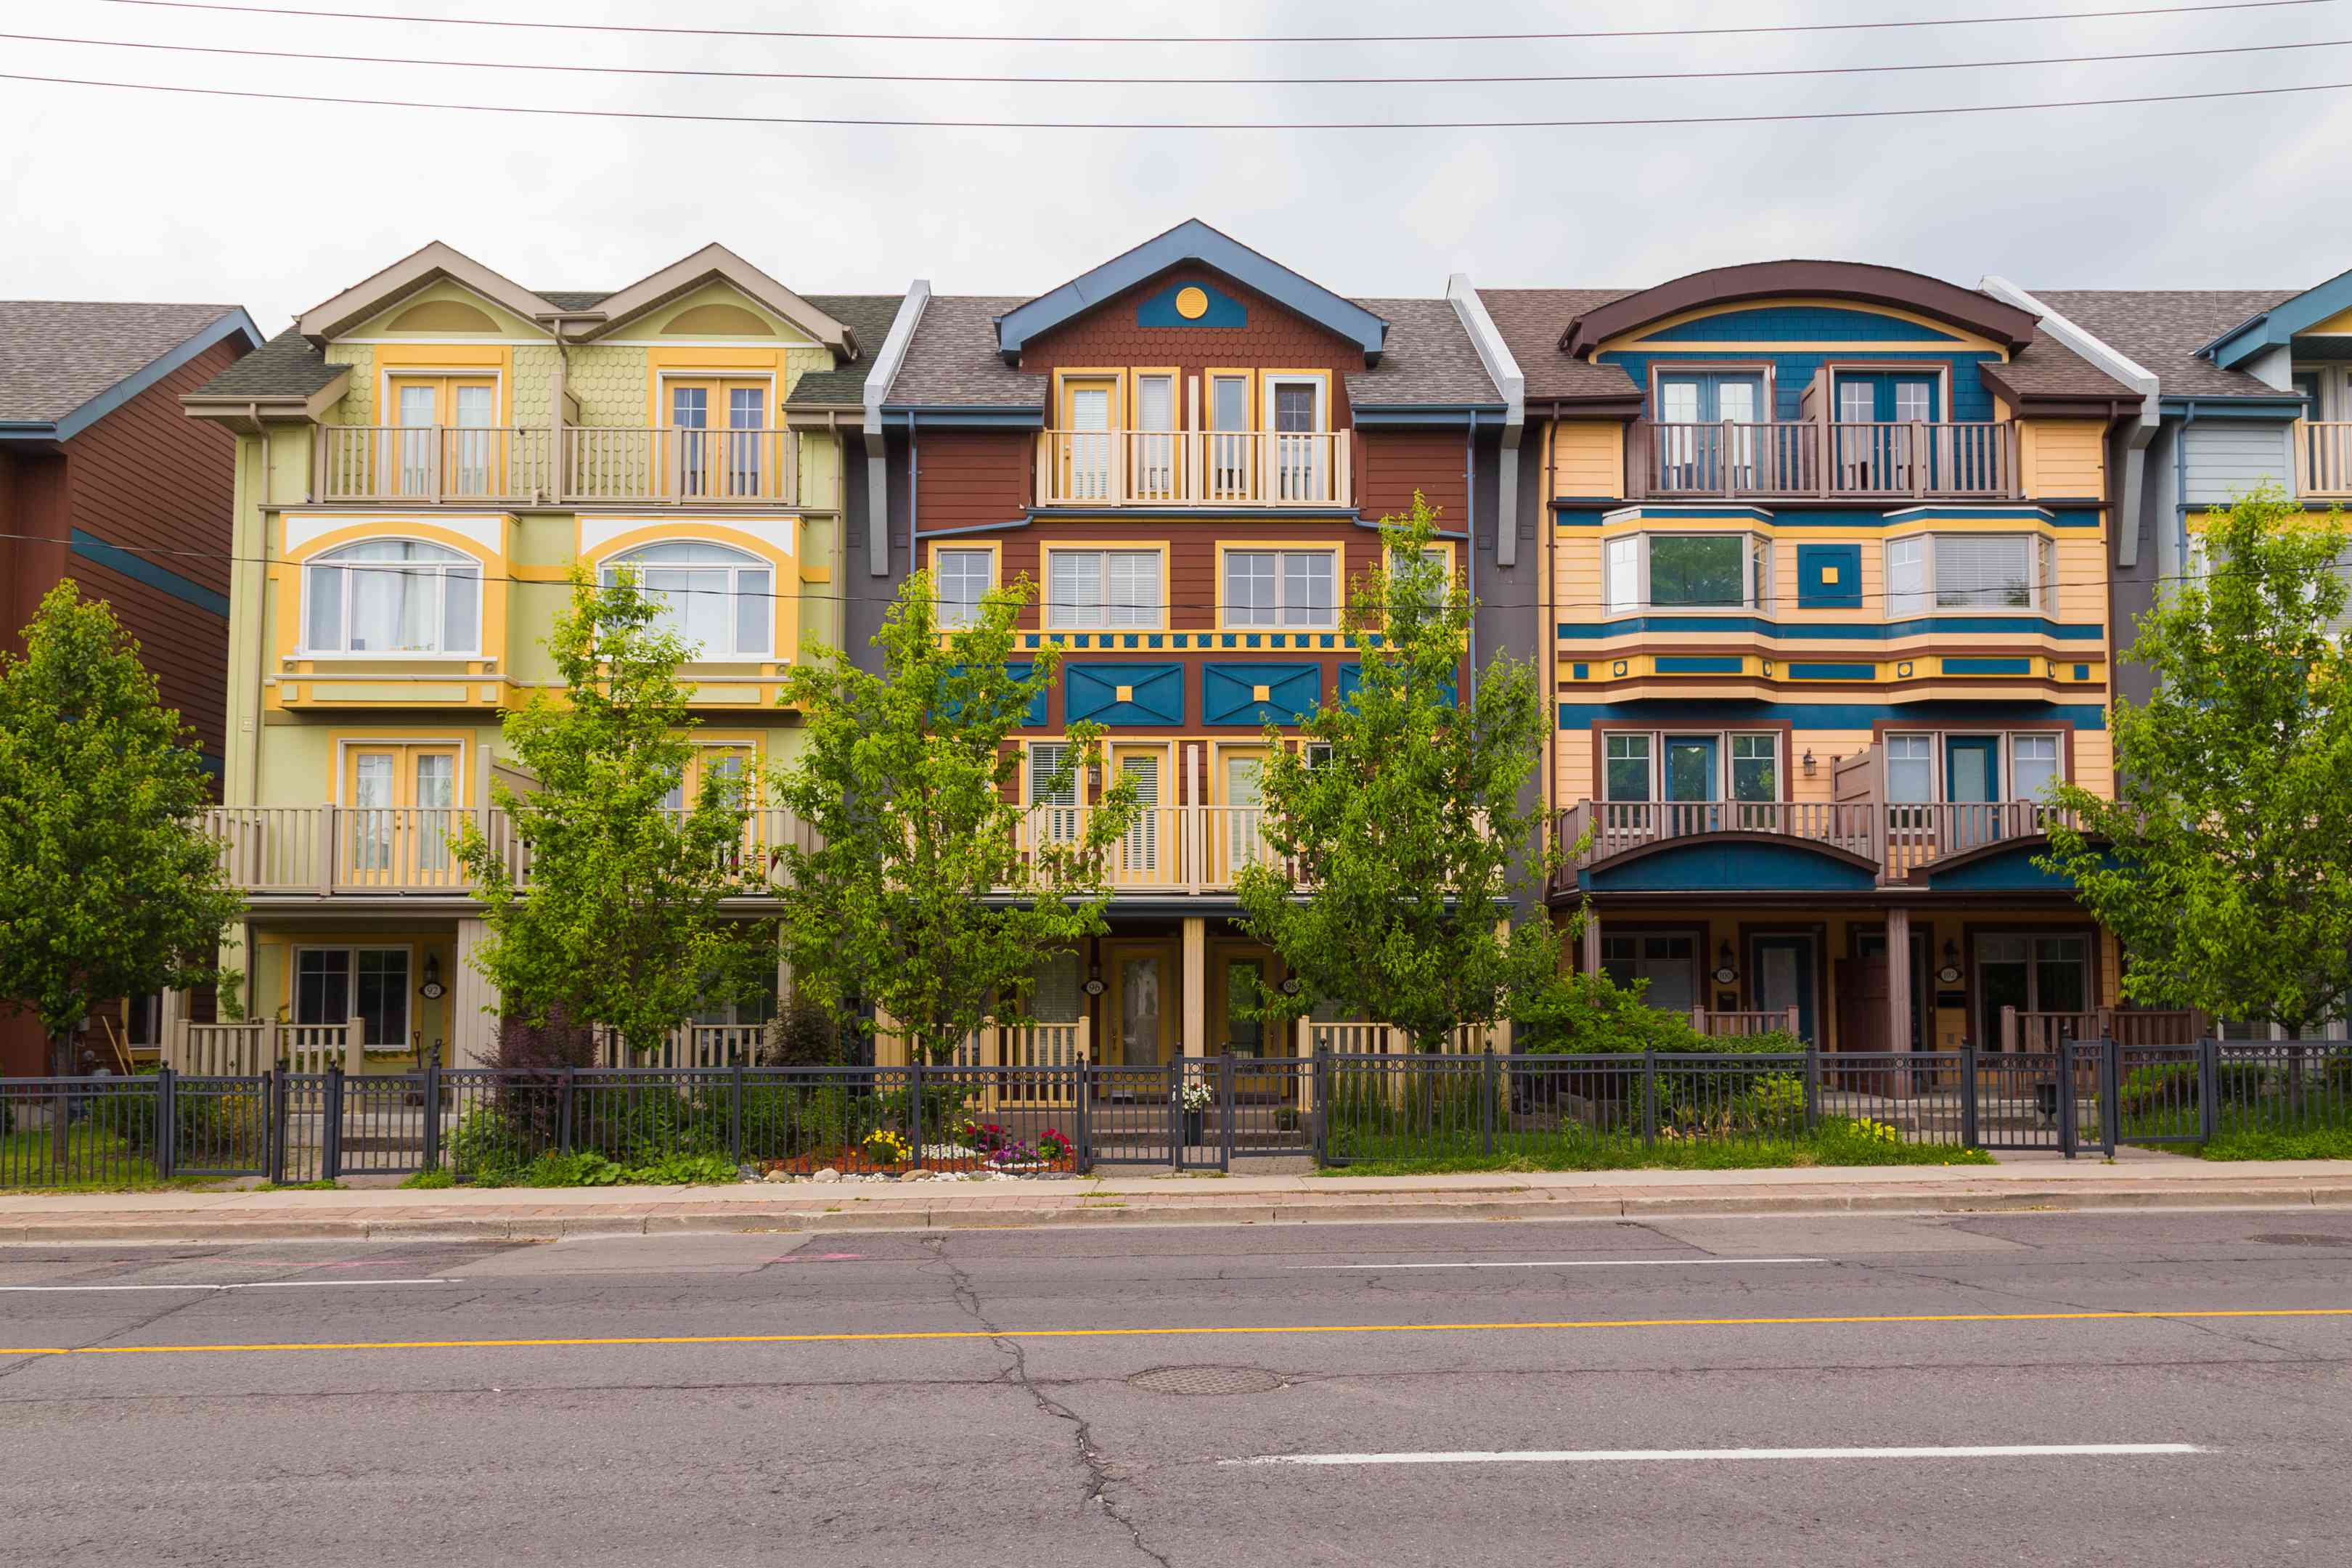 Different colored houses in The Beaches area of Toronto